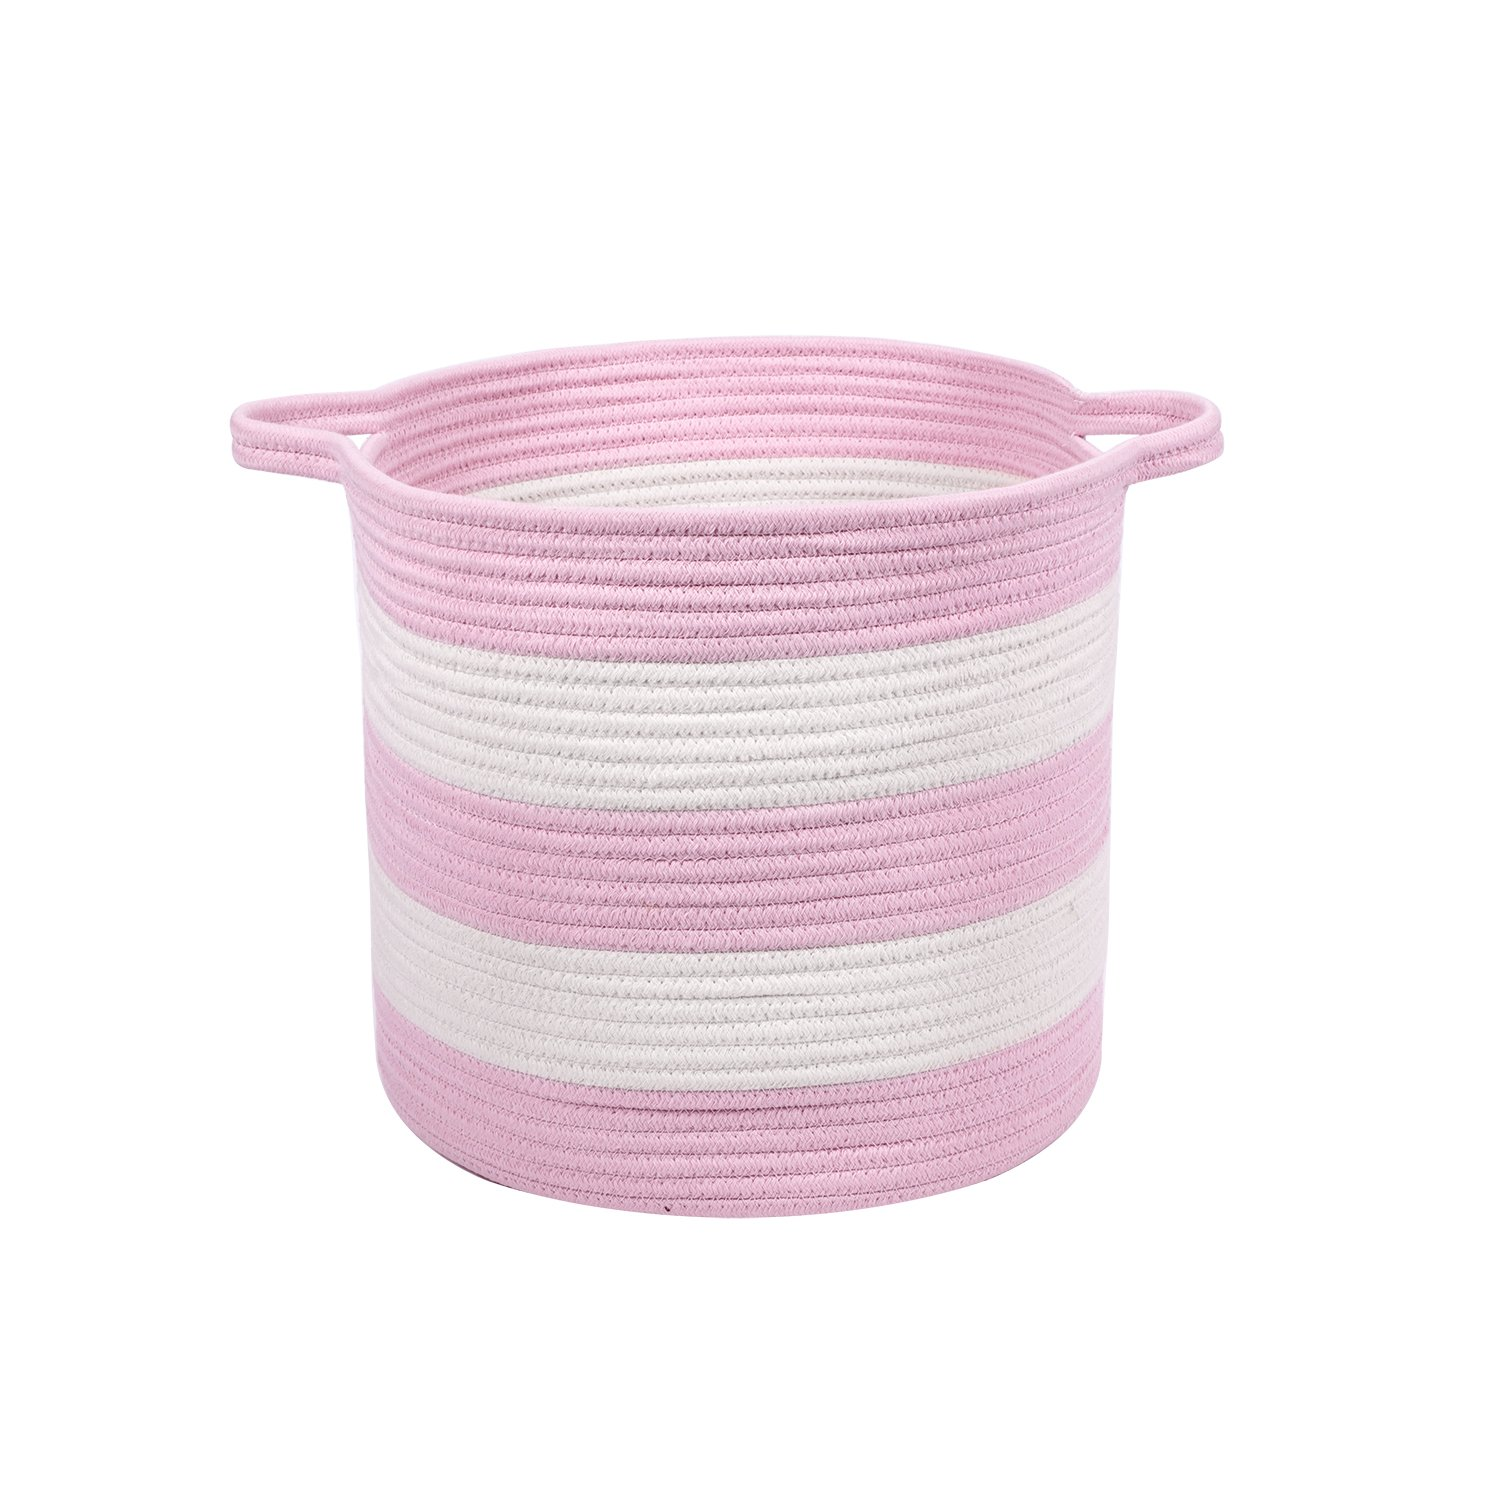 Get Quotations M2 Home Accessories Cotton Rope Storage Basket With Handles Woven Baskets For Kid S Toys Organizing